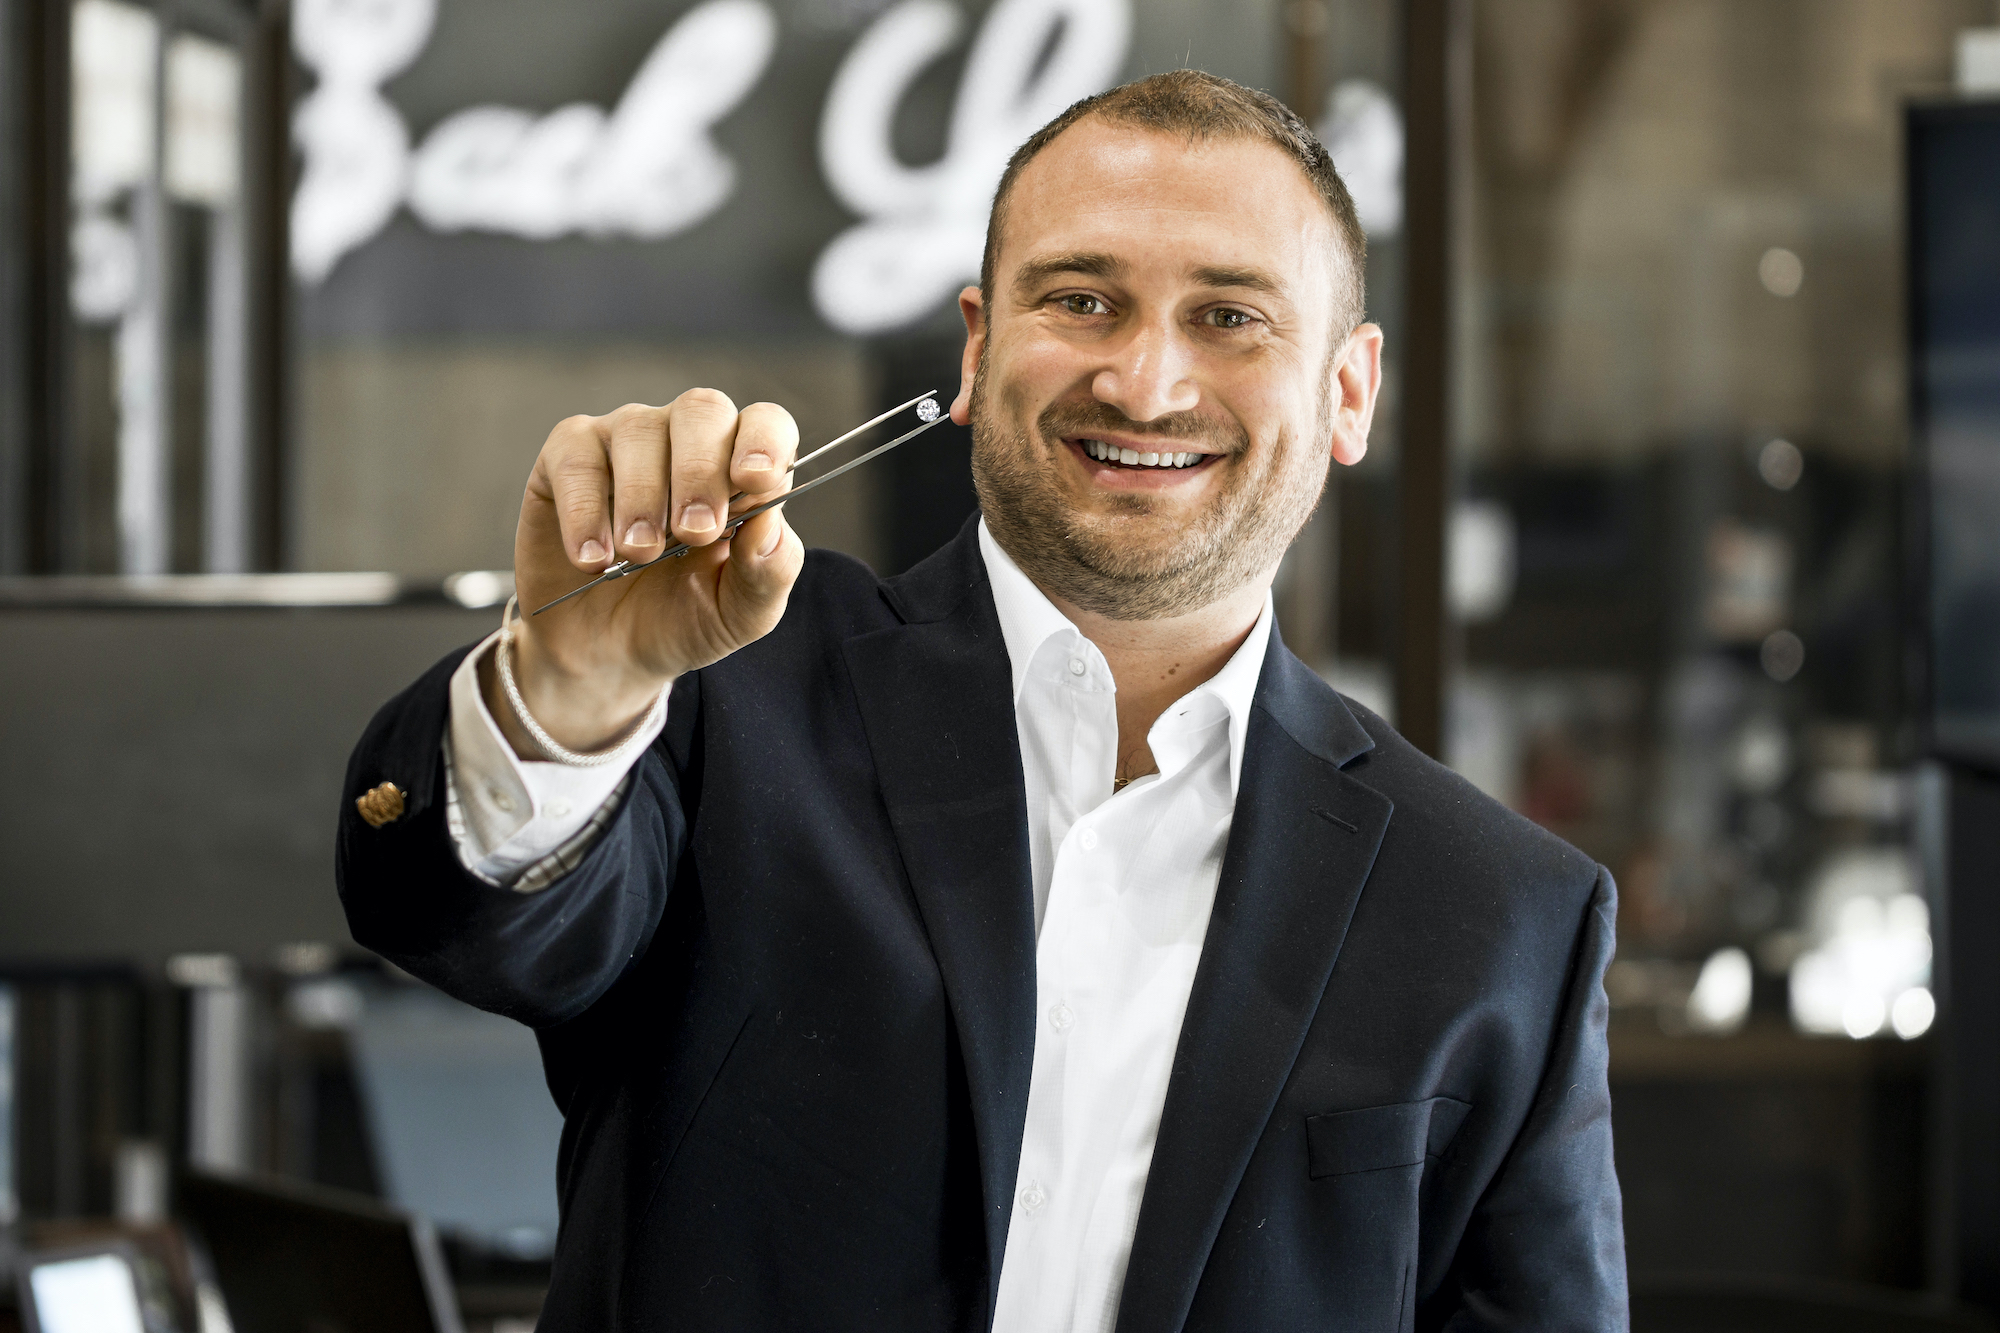 sales associate Brooks smiling at the camera while holding a round diamond with a pair of tweezers